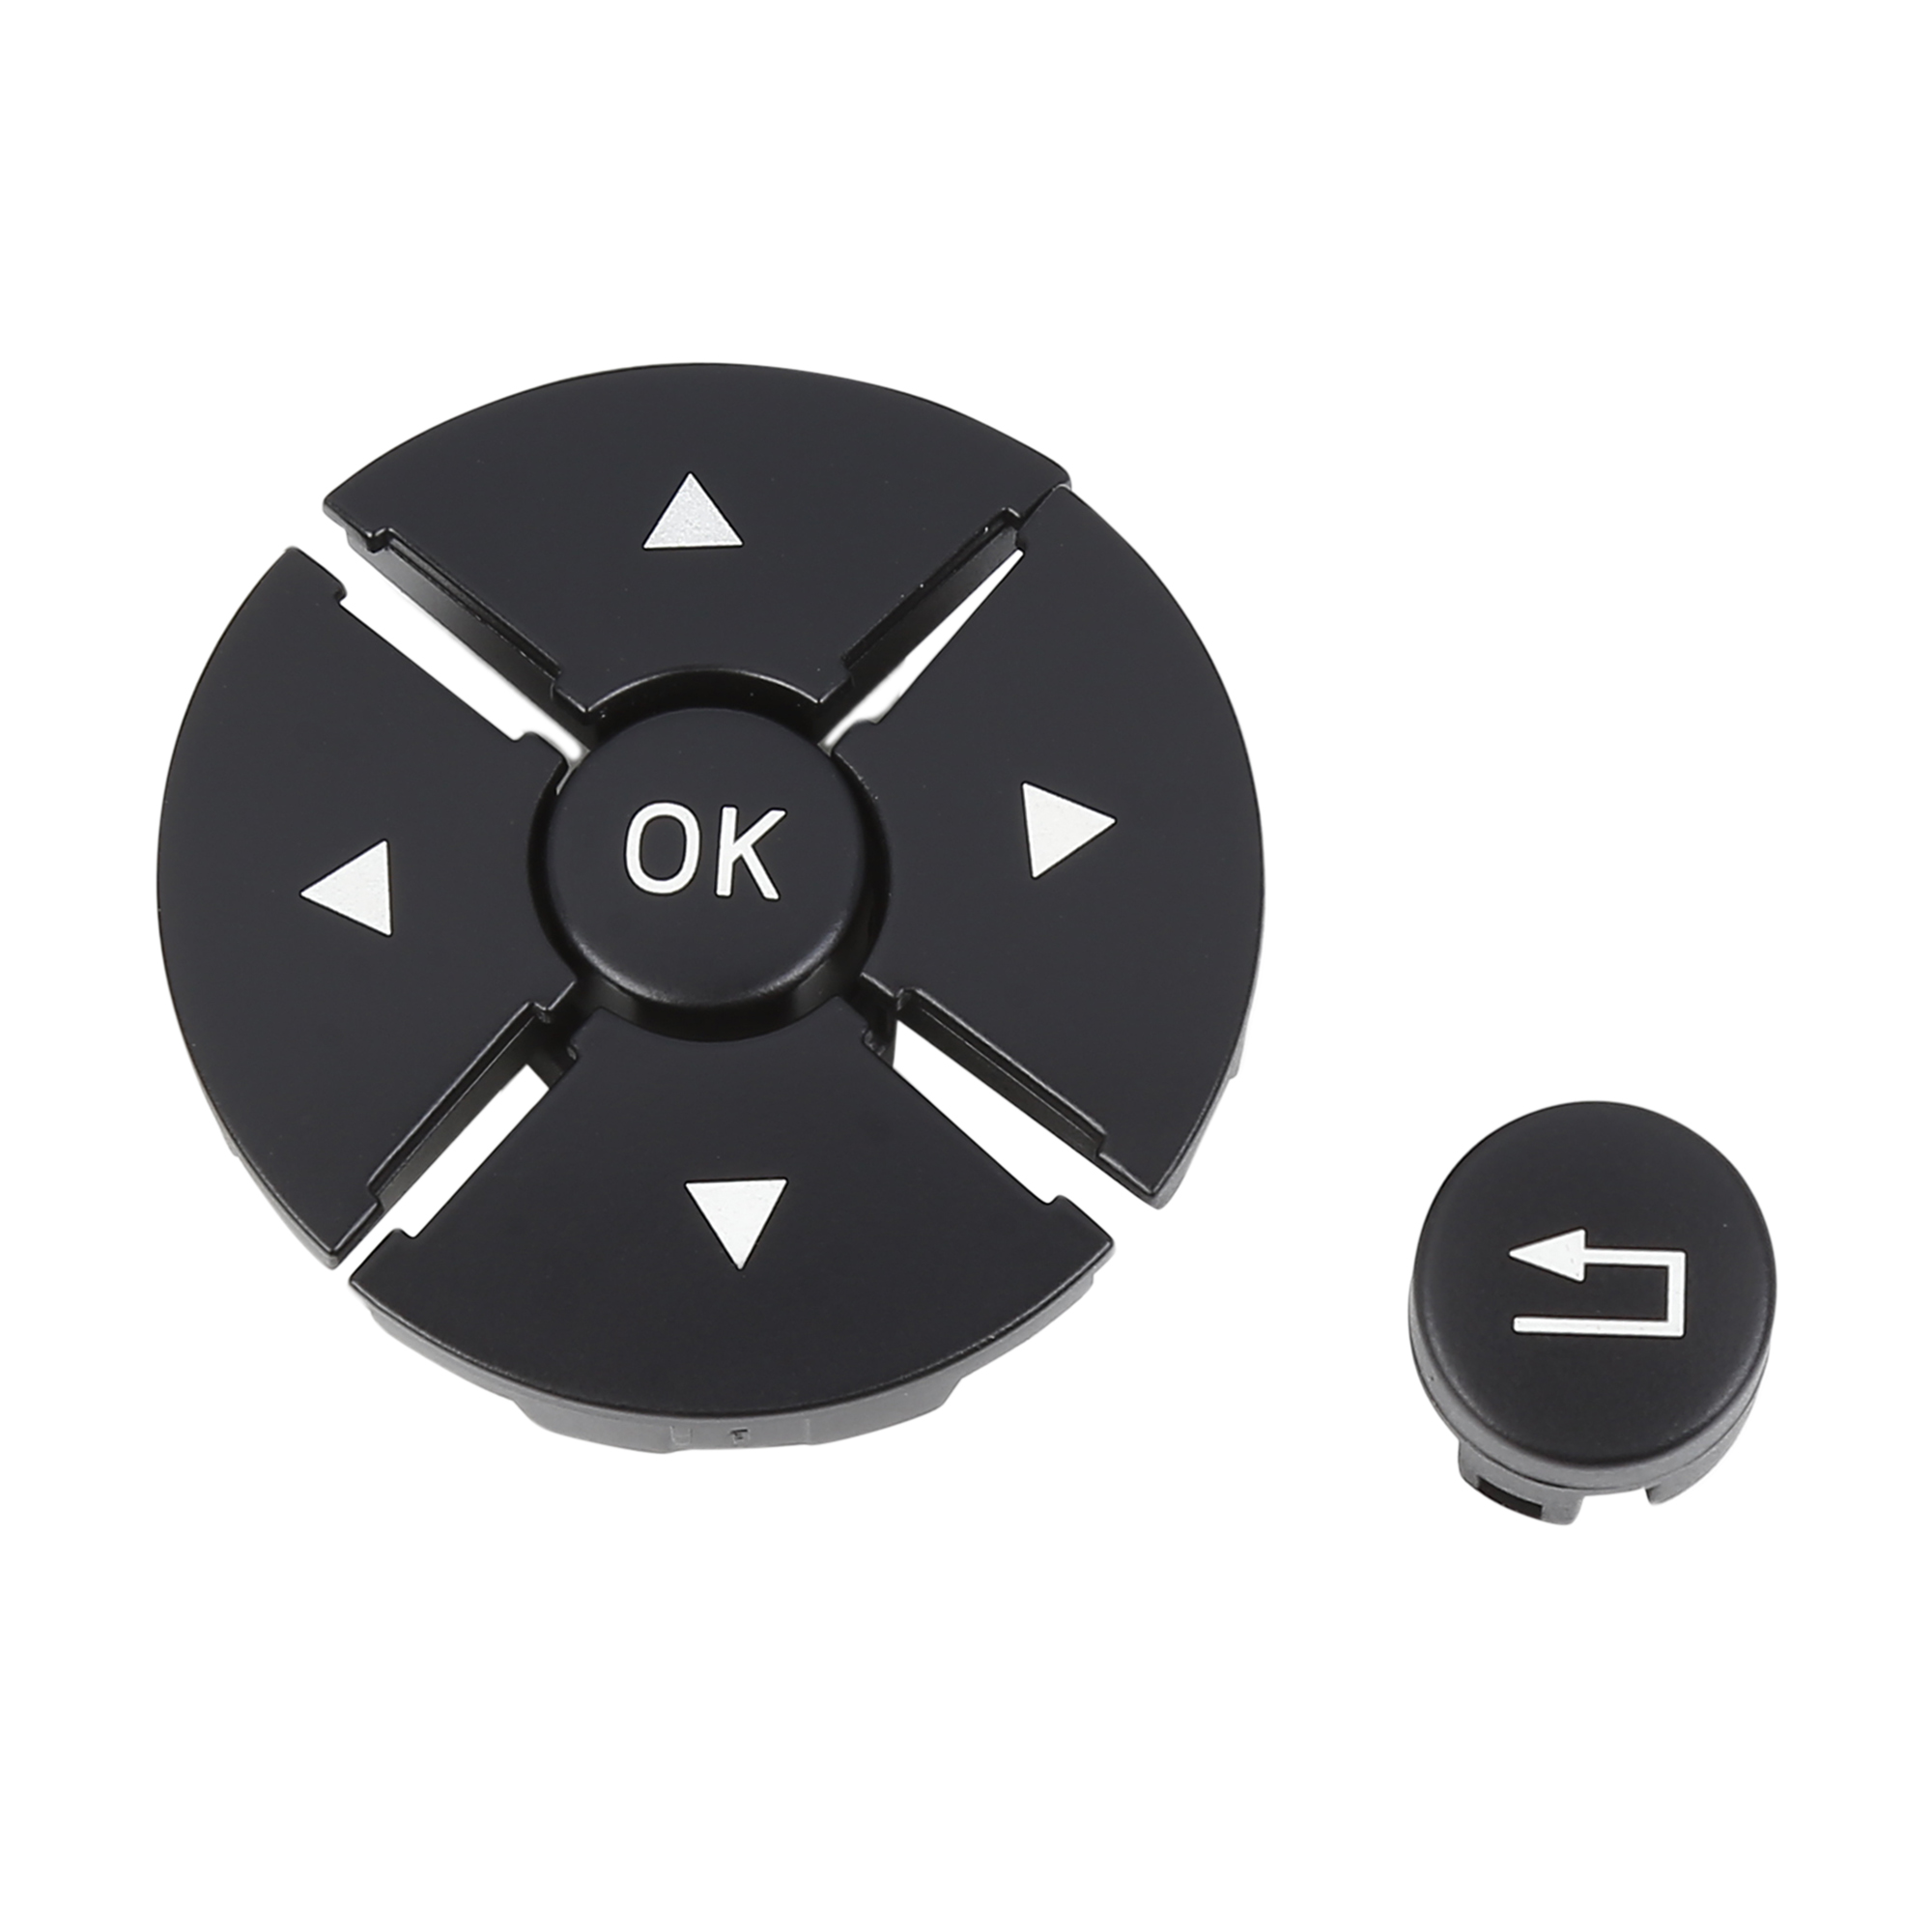 Set Left Steering Wheel Switch Control Button for Benz S-Class W221 Black